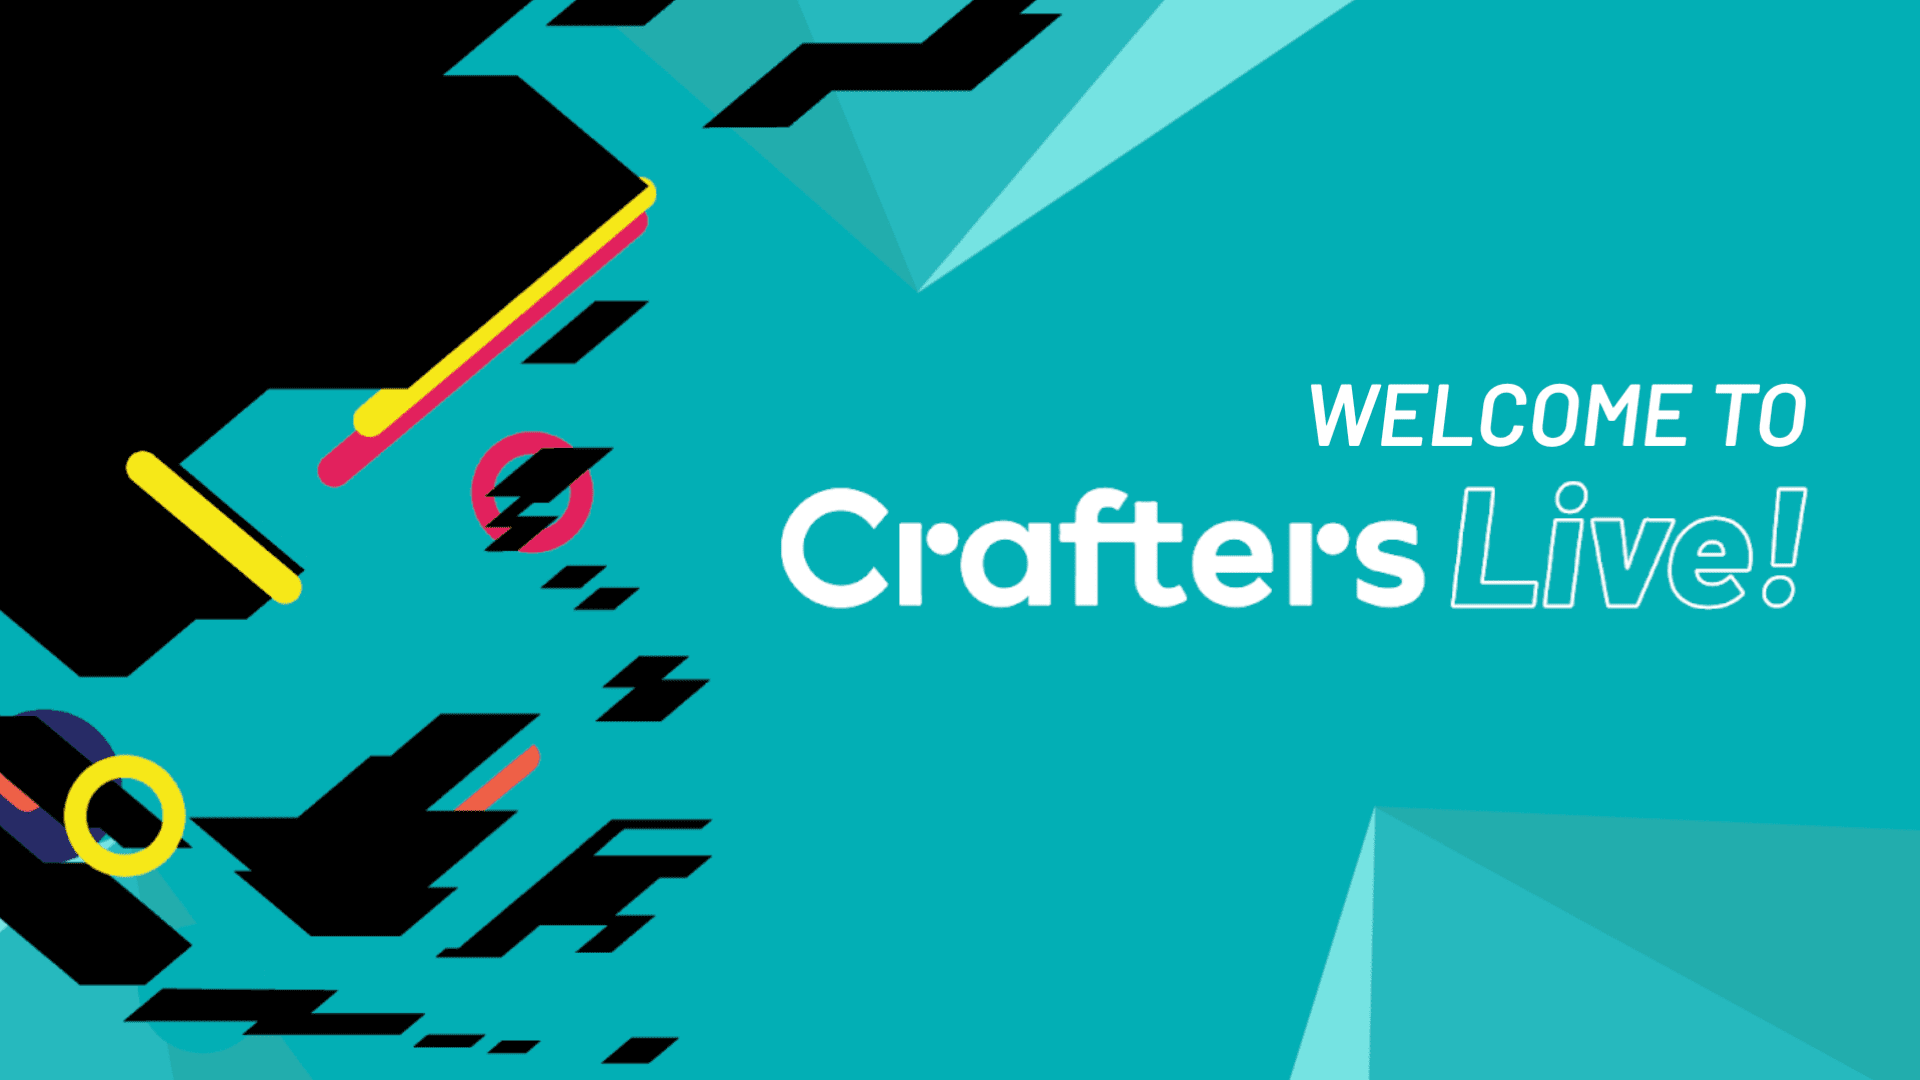 Crafters: Free online events